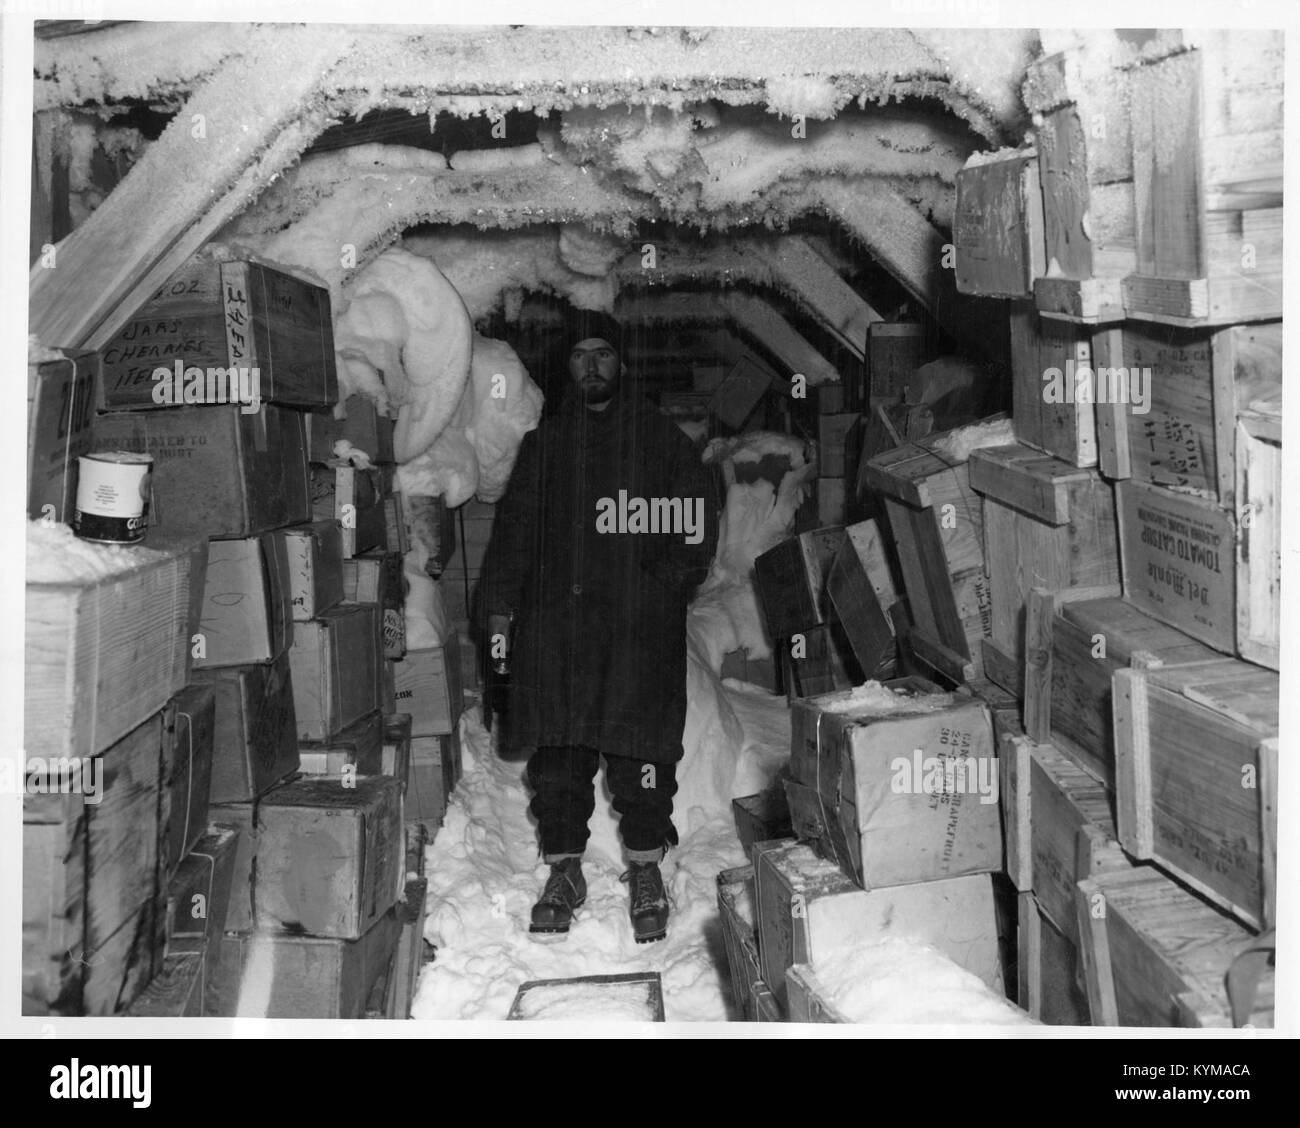 Operation Windmill Expedition Member Inside Building in Antarctica 5243862712 o - Stock Image